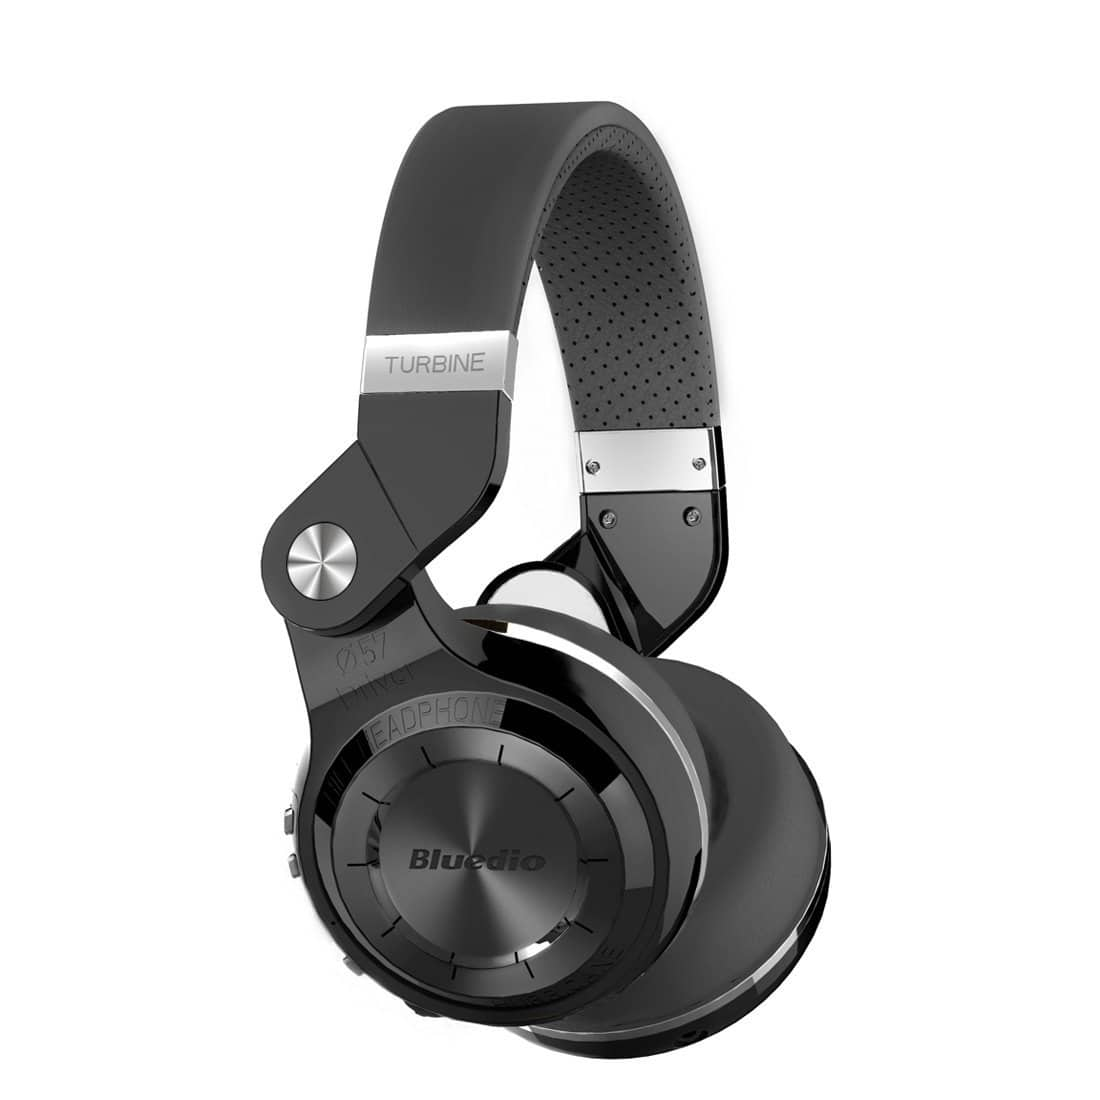 Bluedio Turbine T2s Wireless Bluetooth Headphones w/ Mic  $20